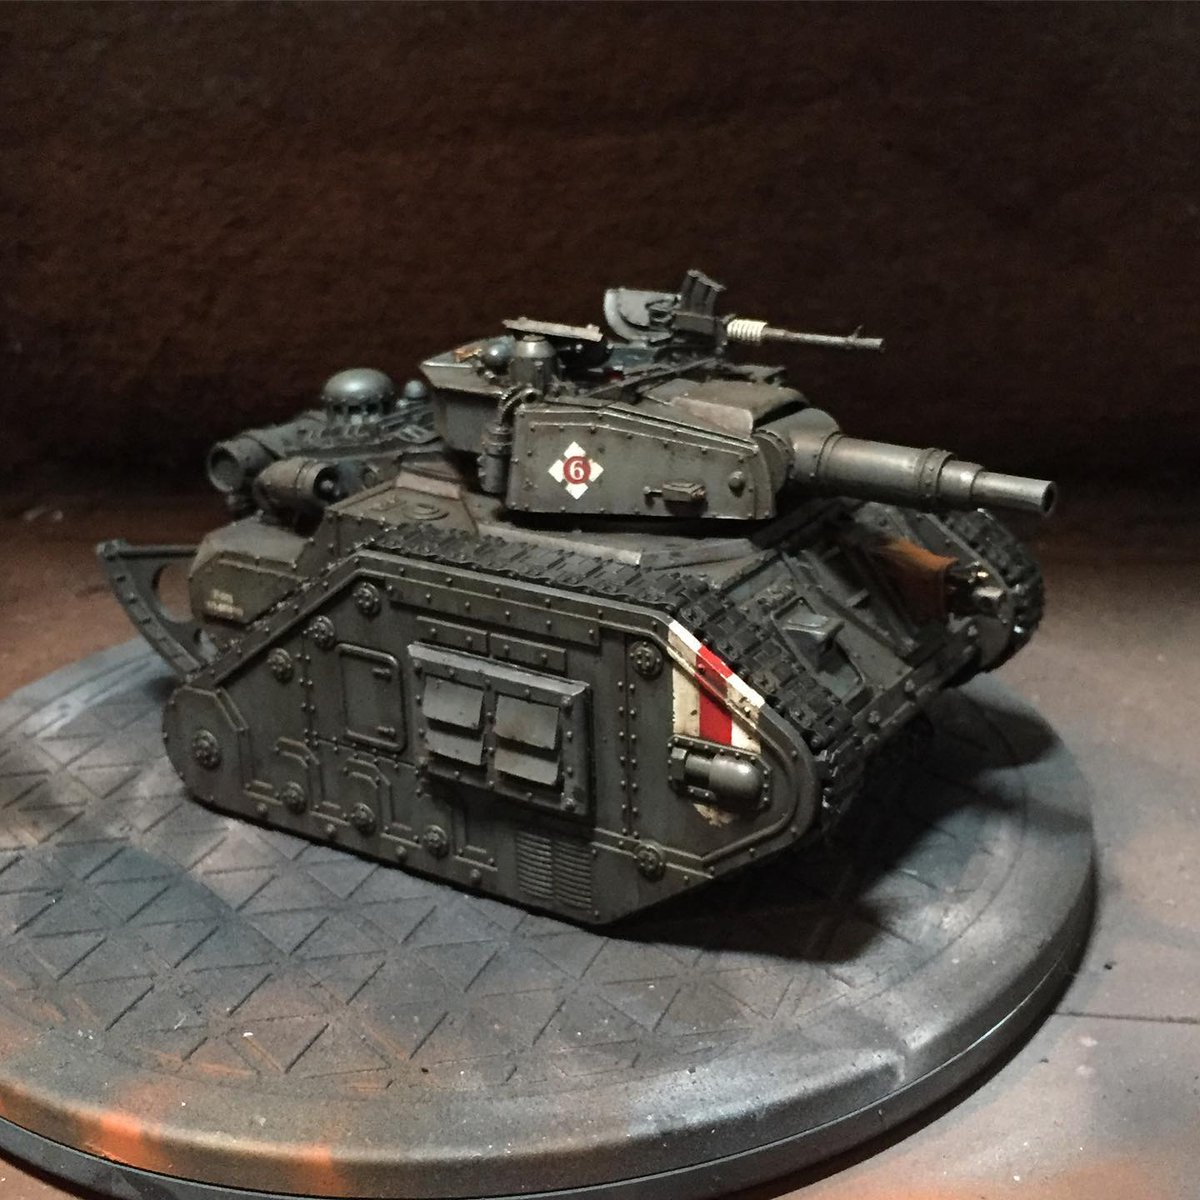 Here's another variant of the tank. Featuring my custom Tyrant Cannon and Armoured Vent Sponson Cover. Check out my store if you'd like to get those. . . #wh40k #warhammer40k #warhammer #warhammer40000 #astramilitarum #imperialguard #deathkorpsofkrieg #forgeworld #warhammerco https://t.co/gNzhpkZaWK